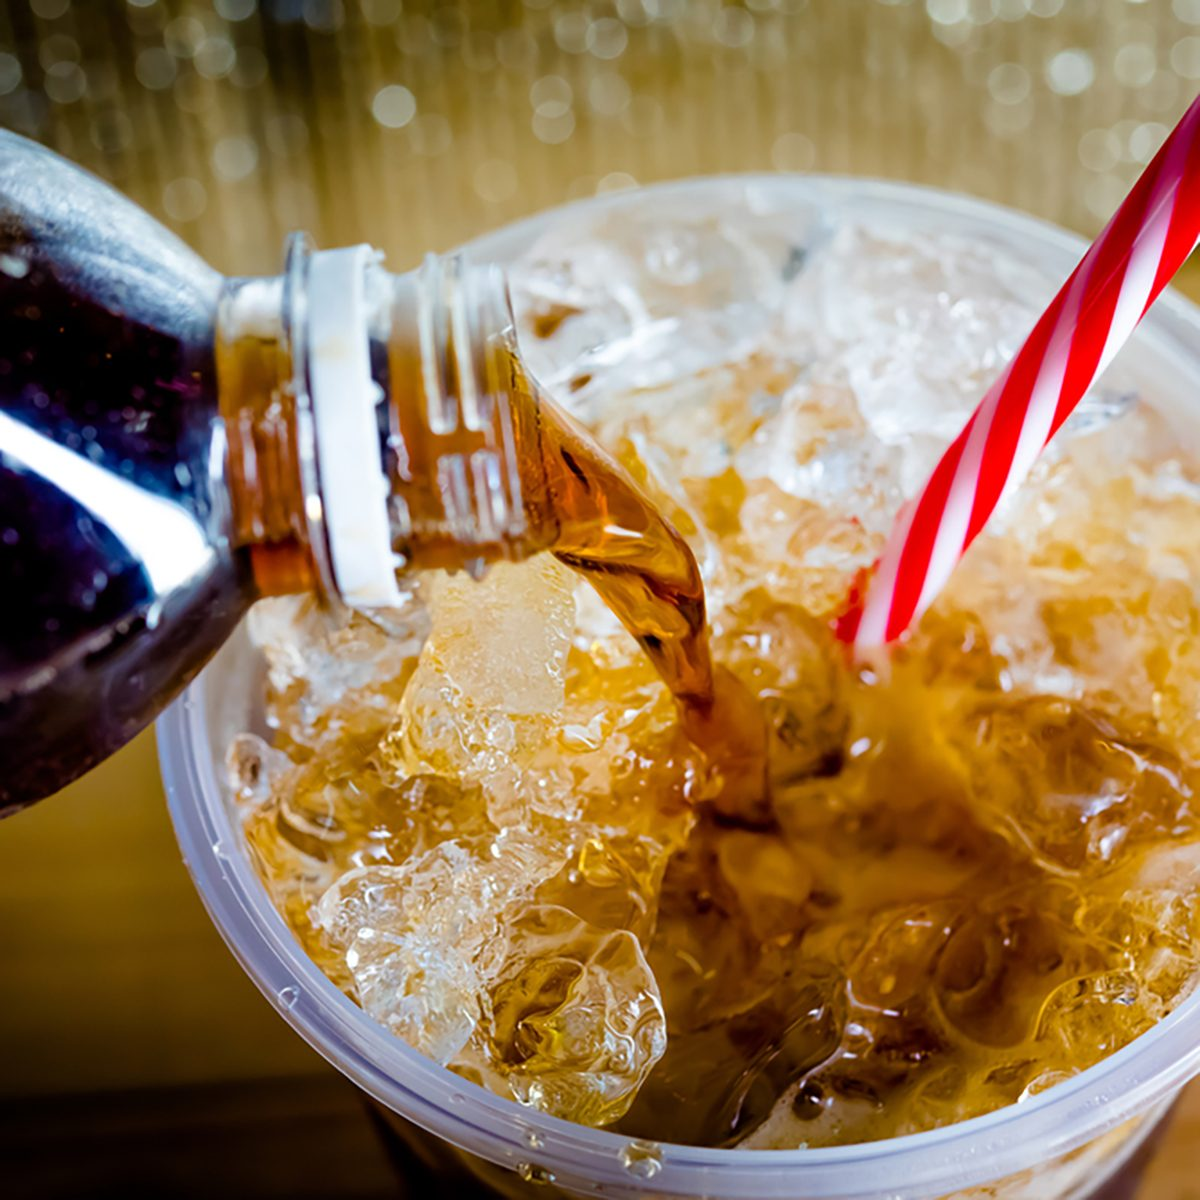 Refreshing Bubbly Soda Pop with Ice Cubes. Cold soda iced drink in a glasses - Selective focus, shallow DOF